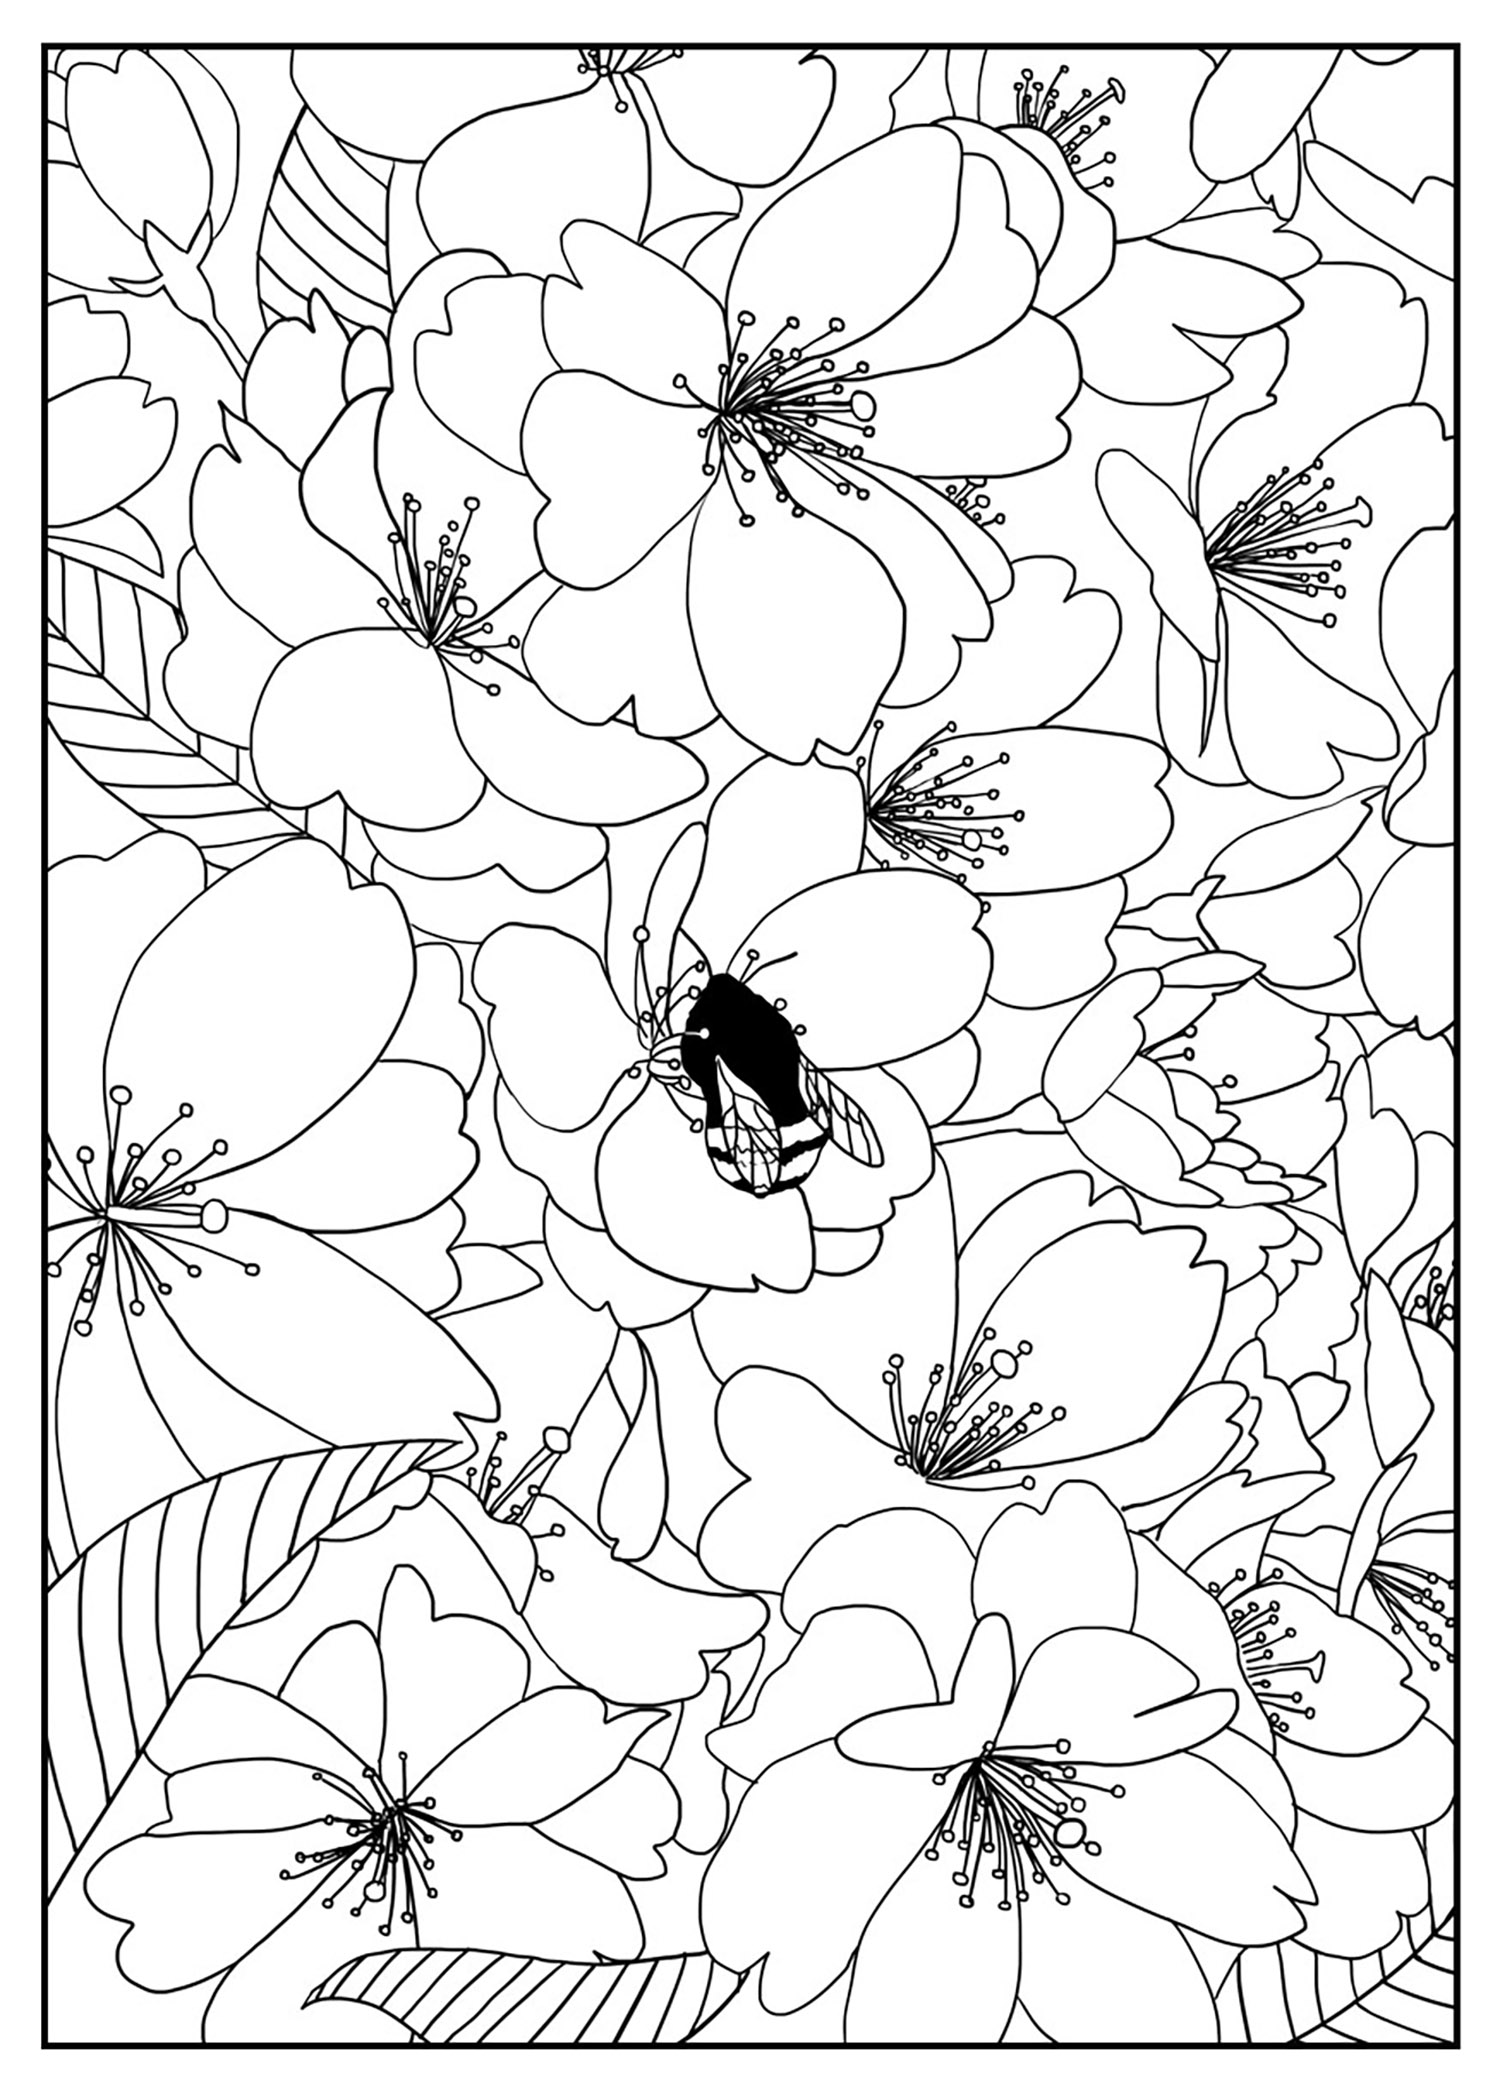 flower coloring pages free printable free printable flower coloring pages for kids best coloring flower printable pages free